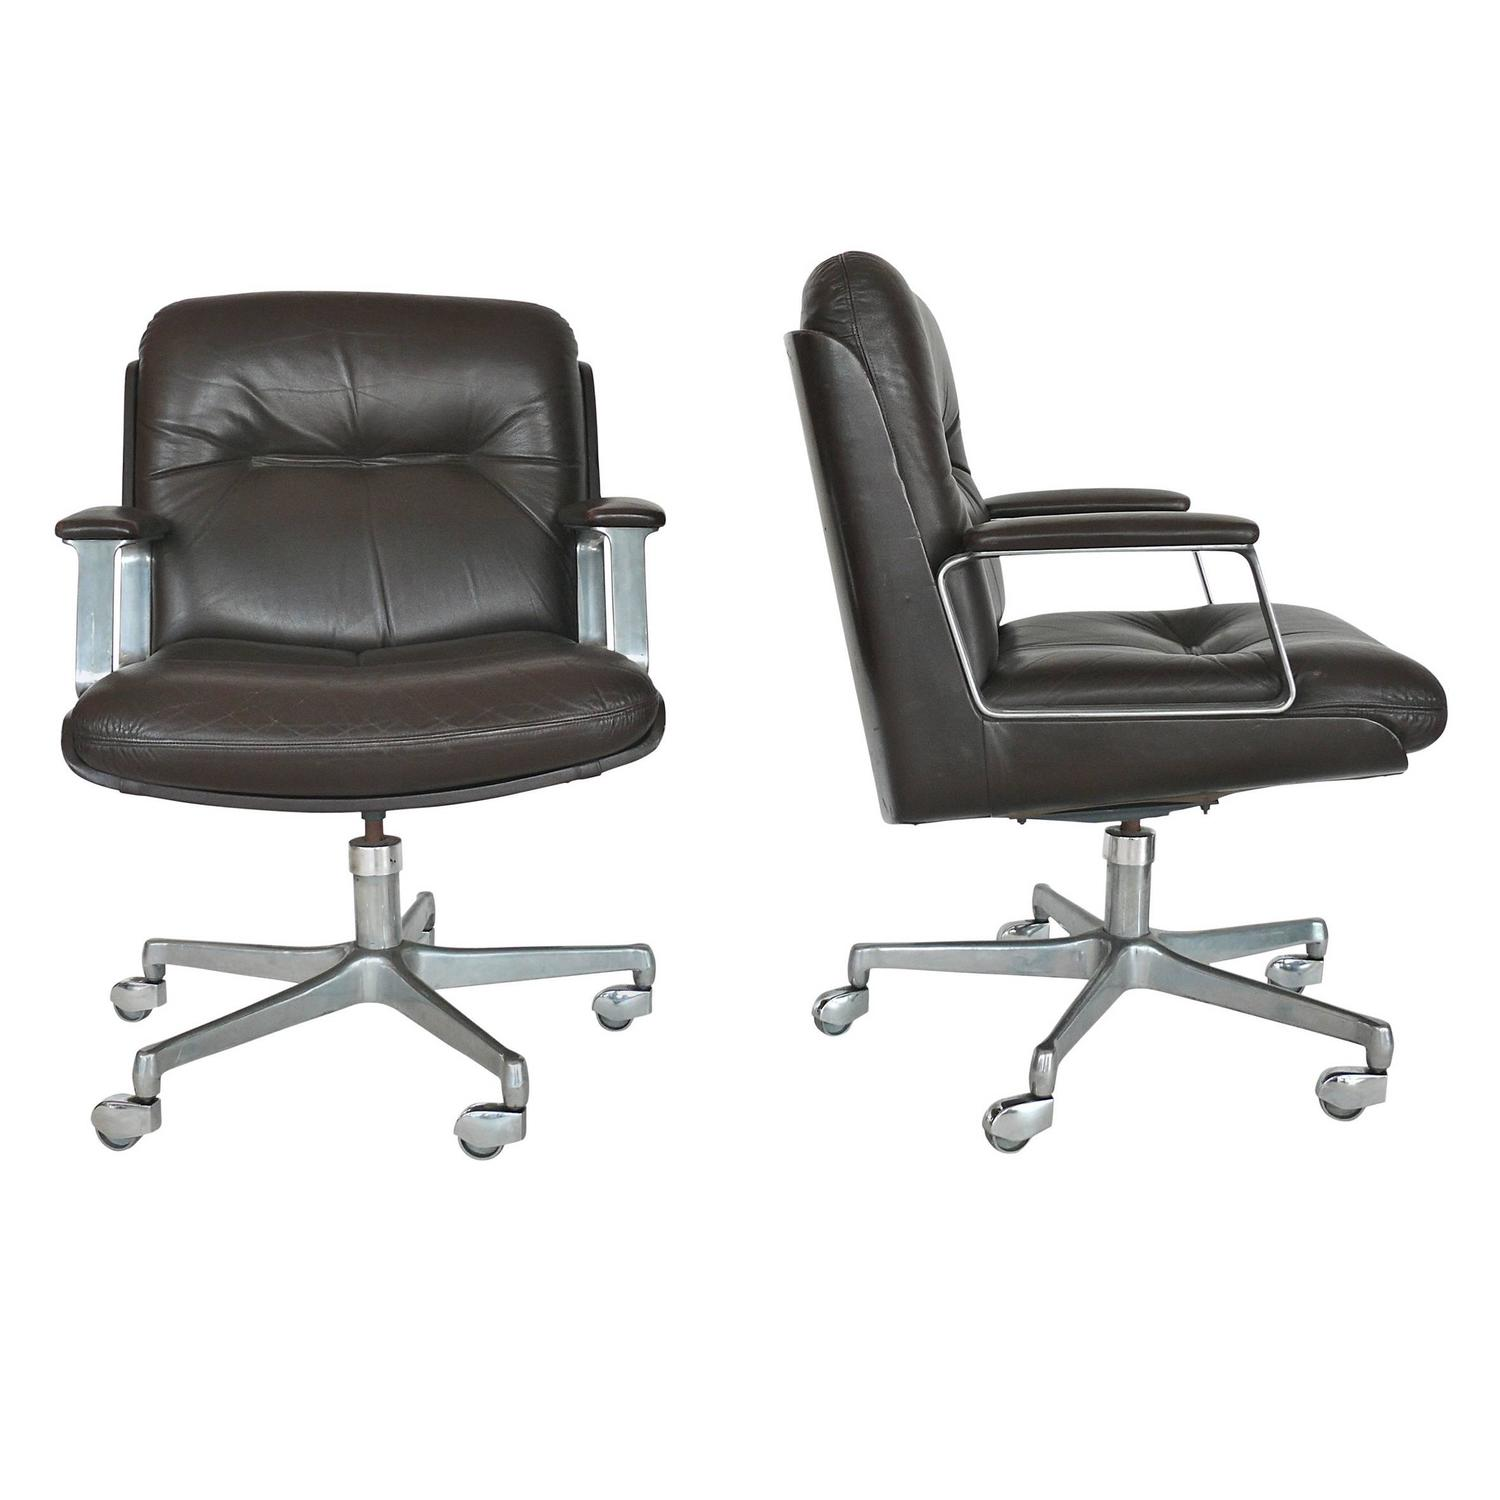 Italian Office Furniture : Italian Leather Office Chairs For Sale at 1stdibs